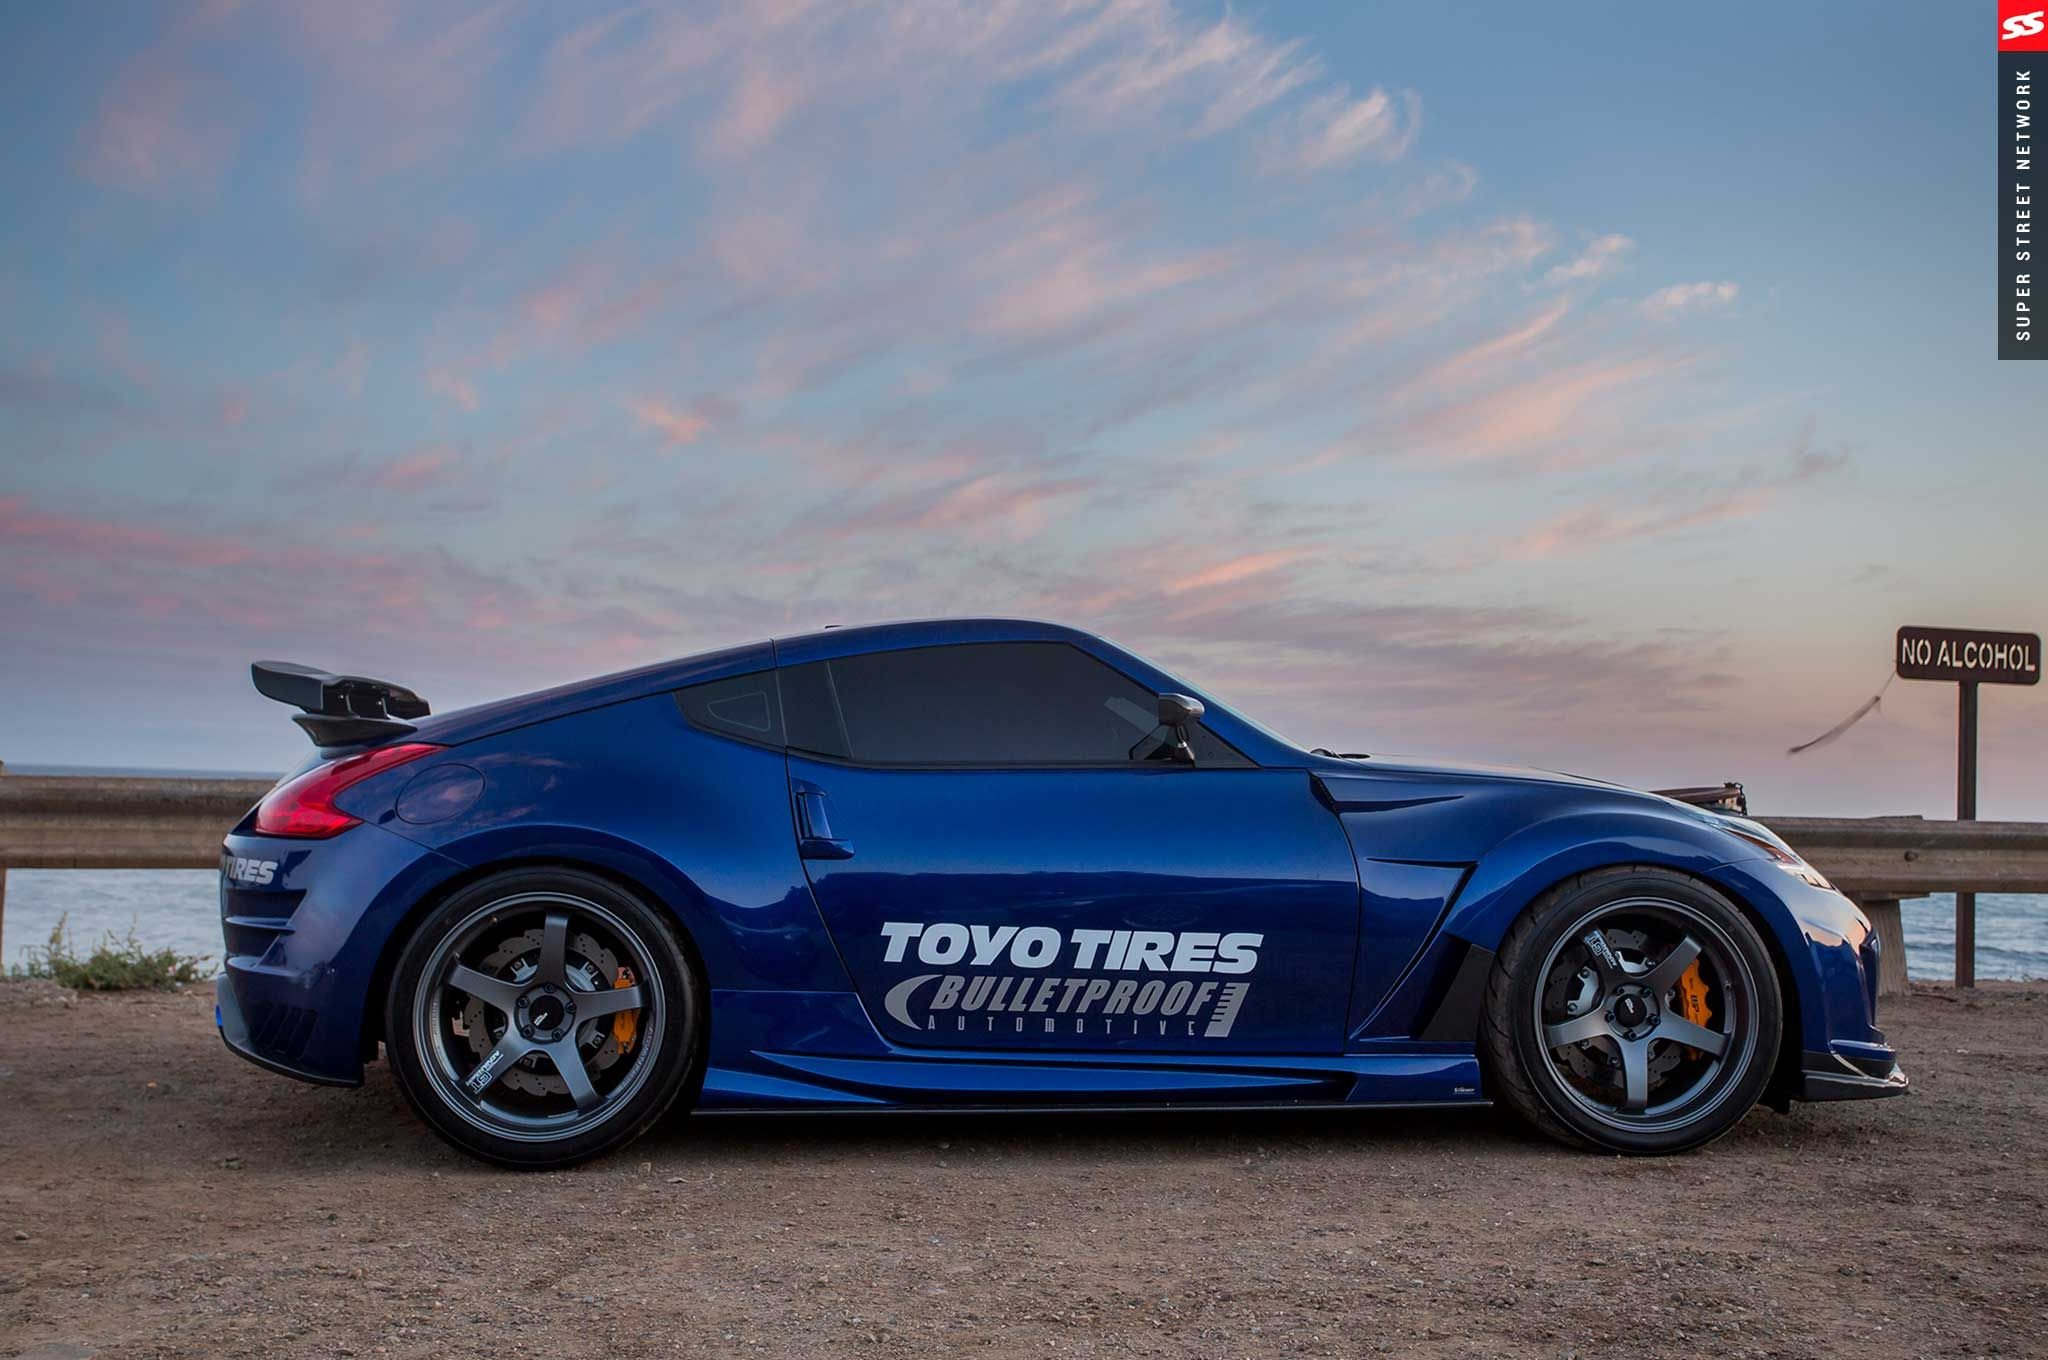 2009 Nissan 370Z coupe blue cars modified wallpaper ...